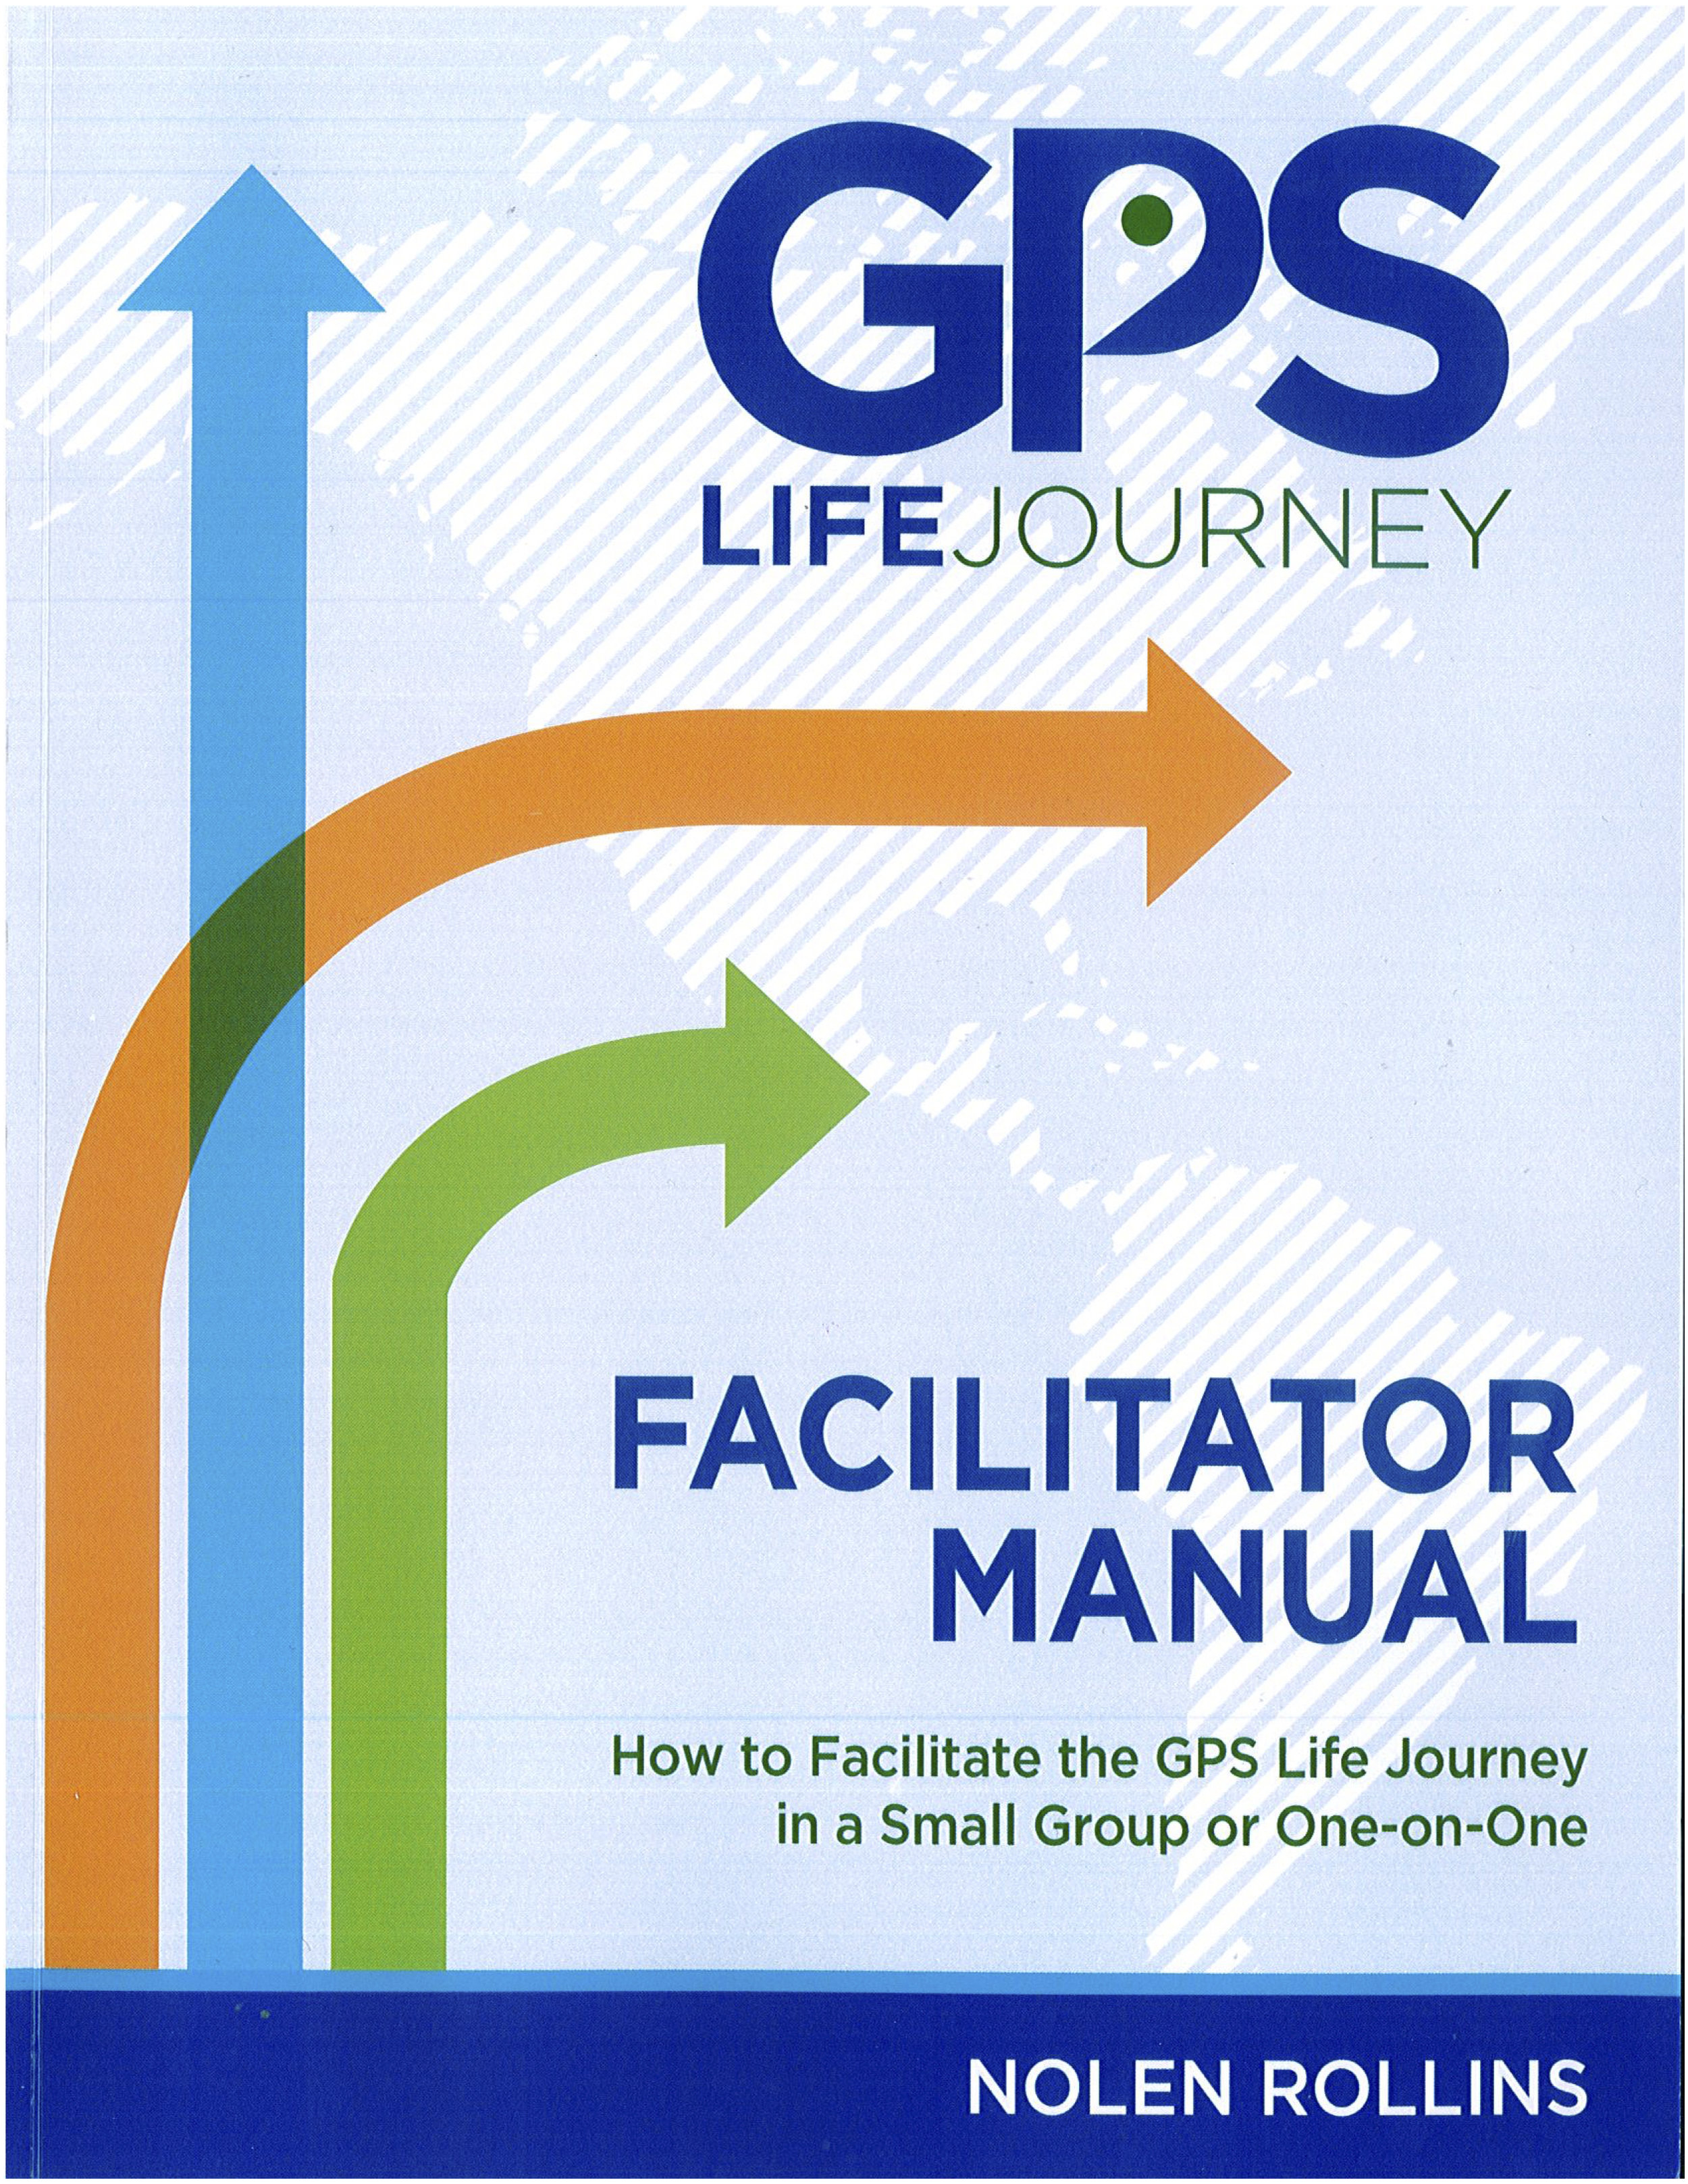 GPS Life Journey Facilitator Manual   Available from the church, the purchase price is $20.